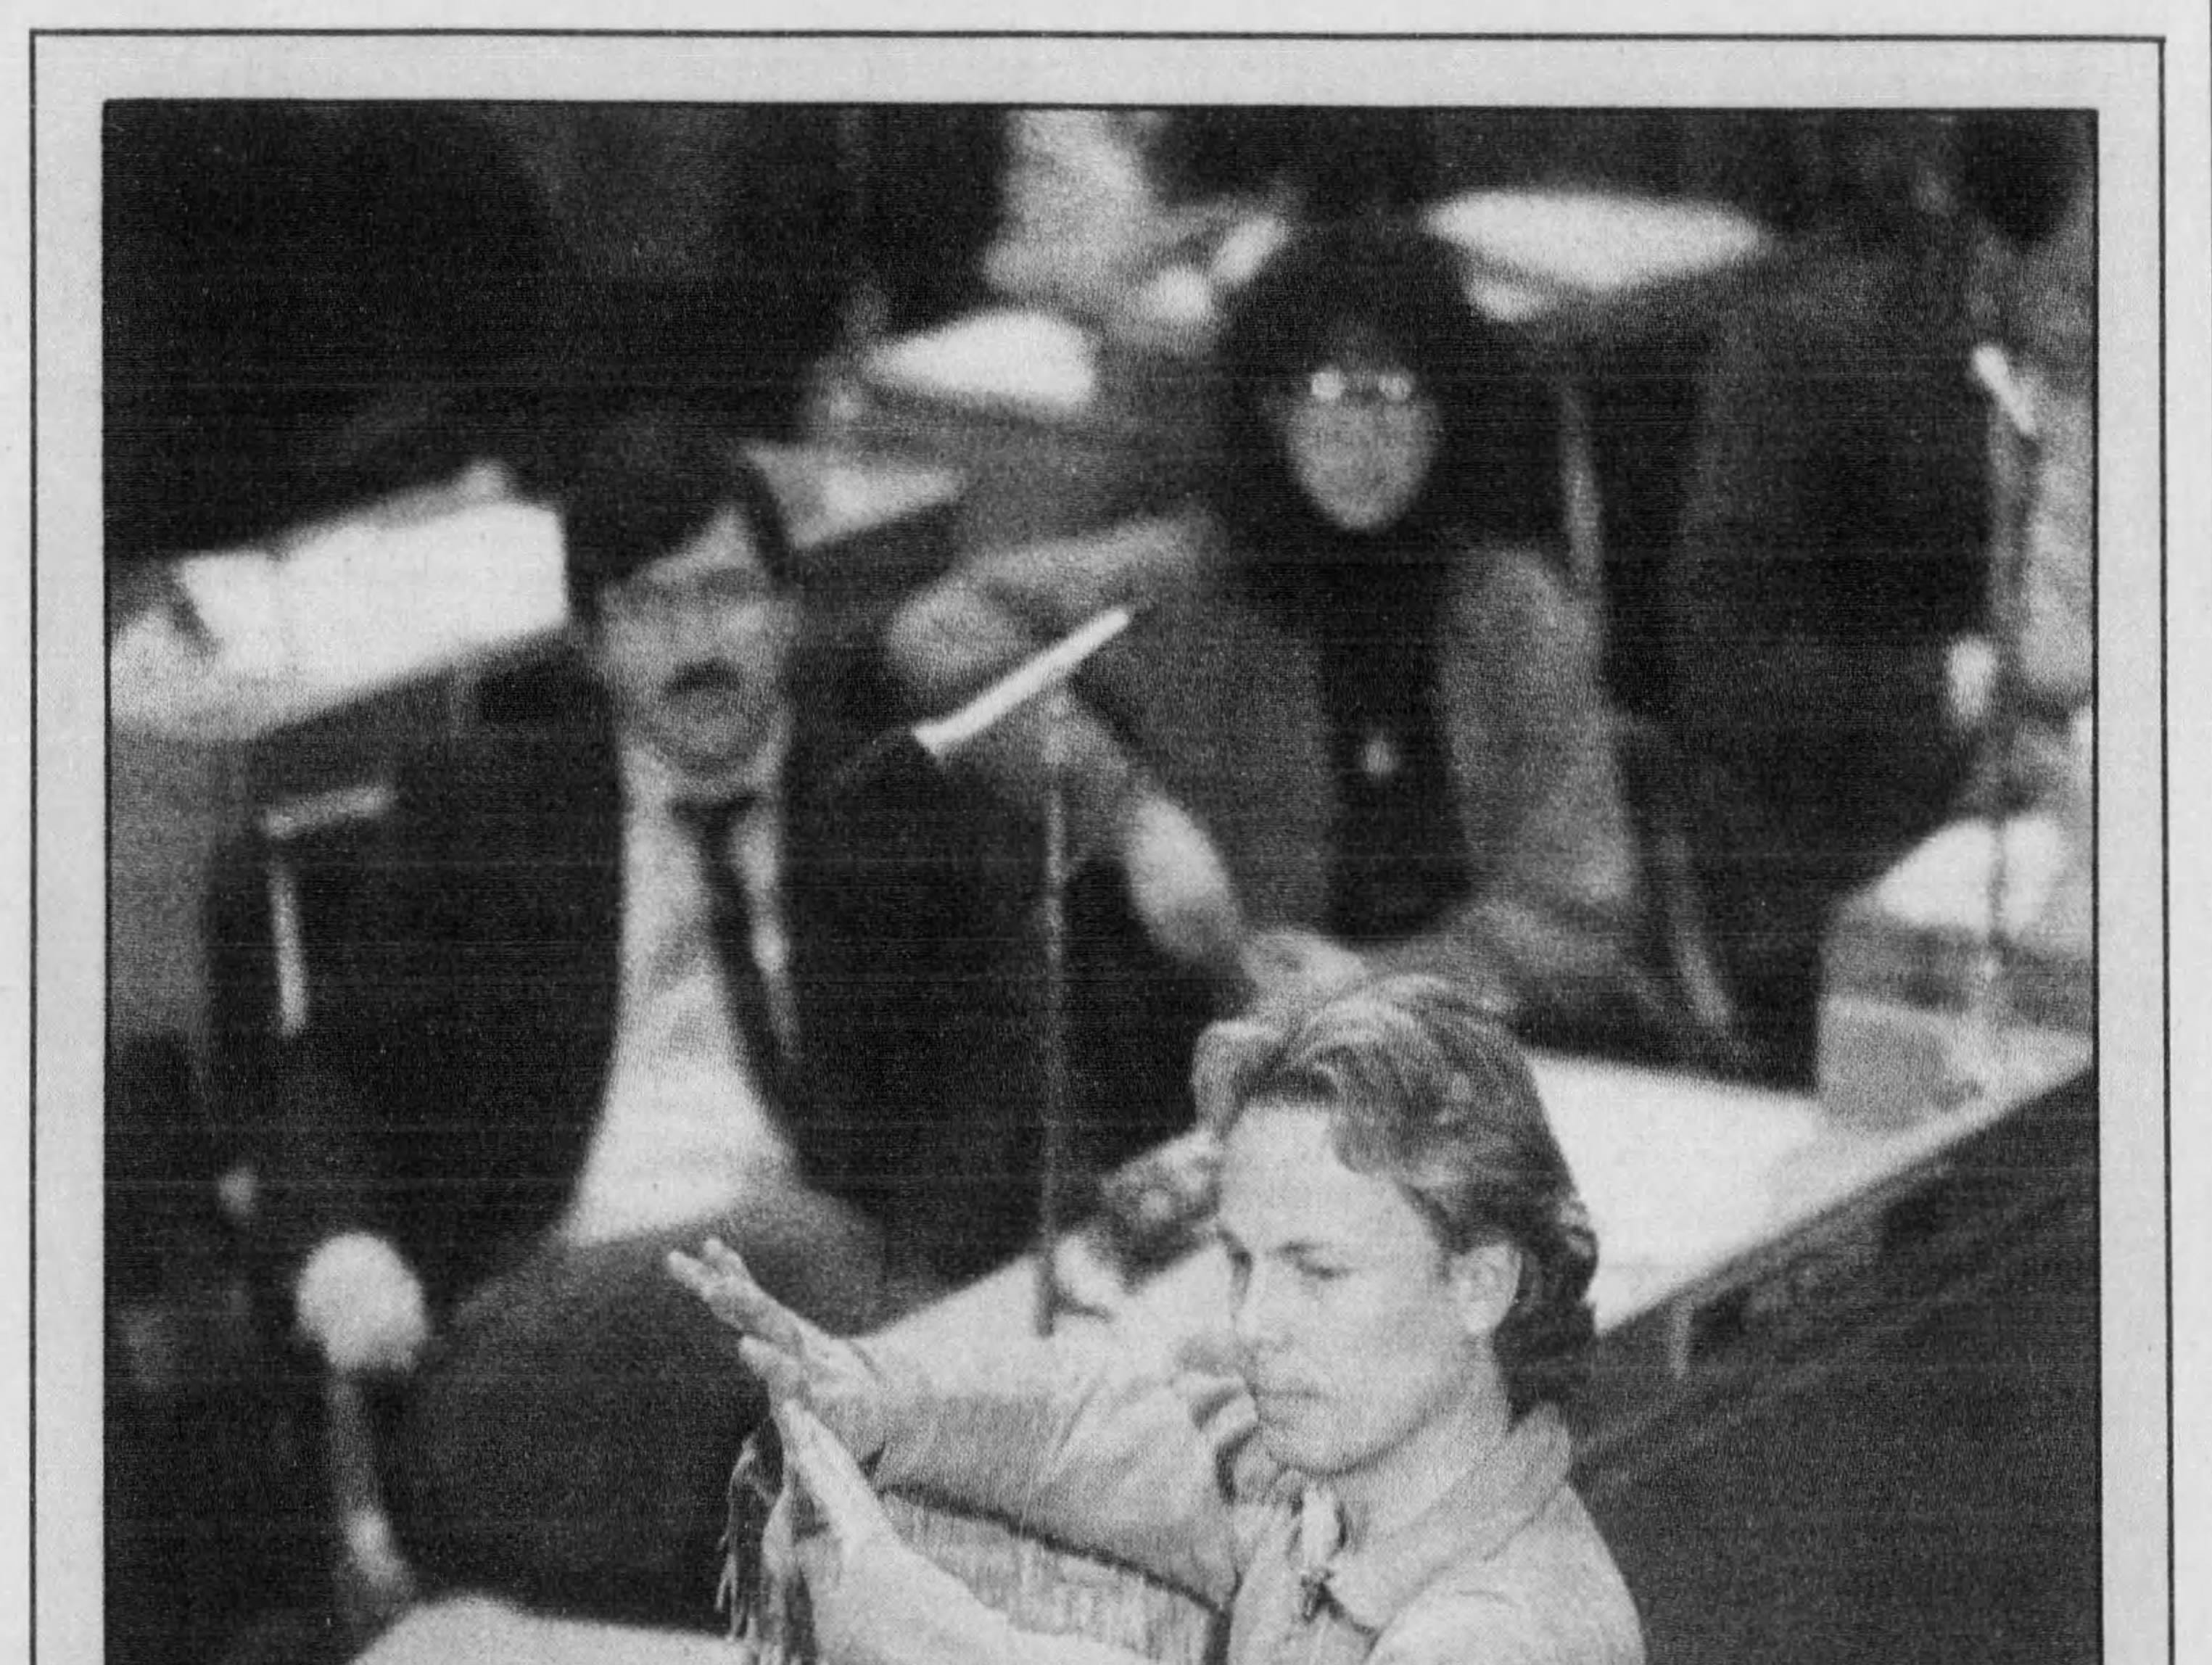 A front-page clip from the Feb. 15, 1989 Statesman Journal the day after Oregon celebrated its 130th birthday.